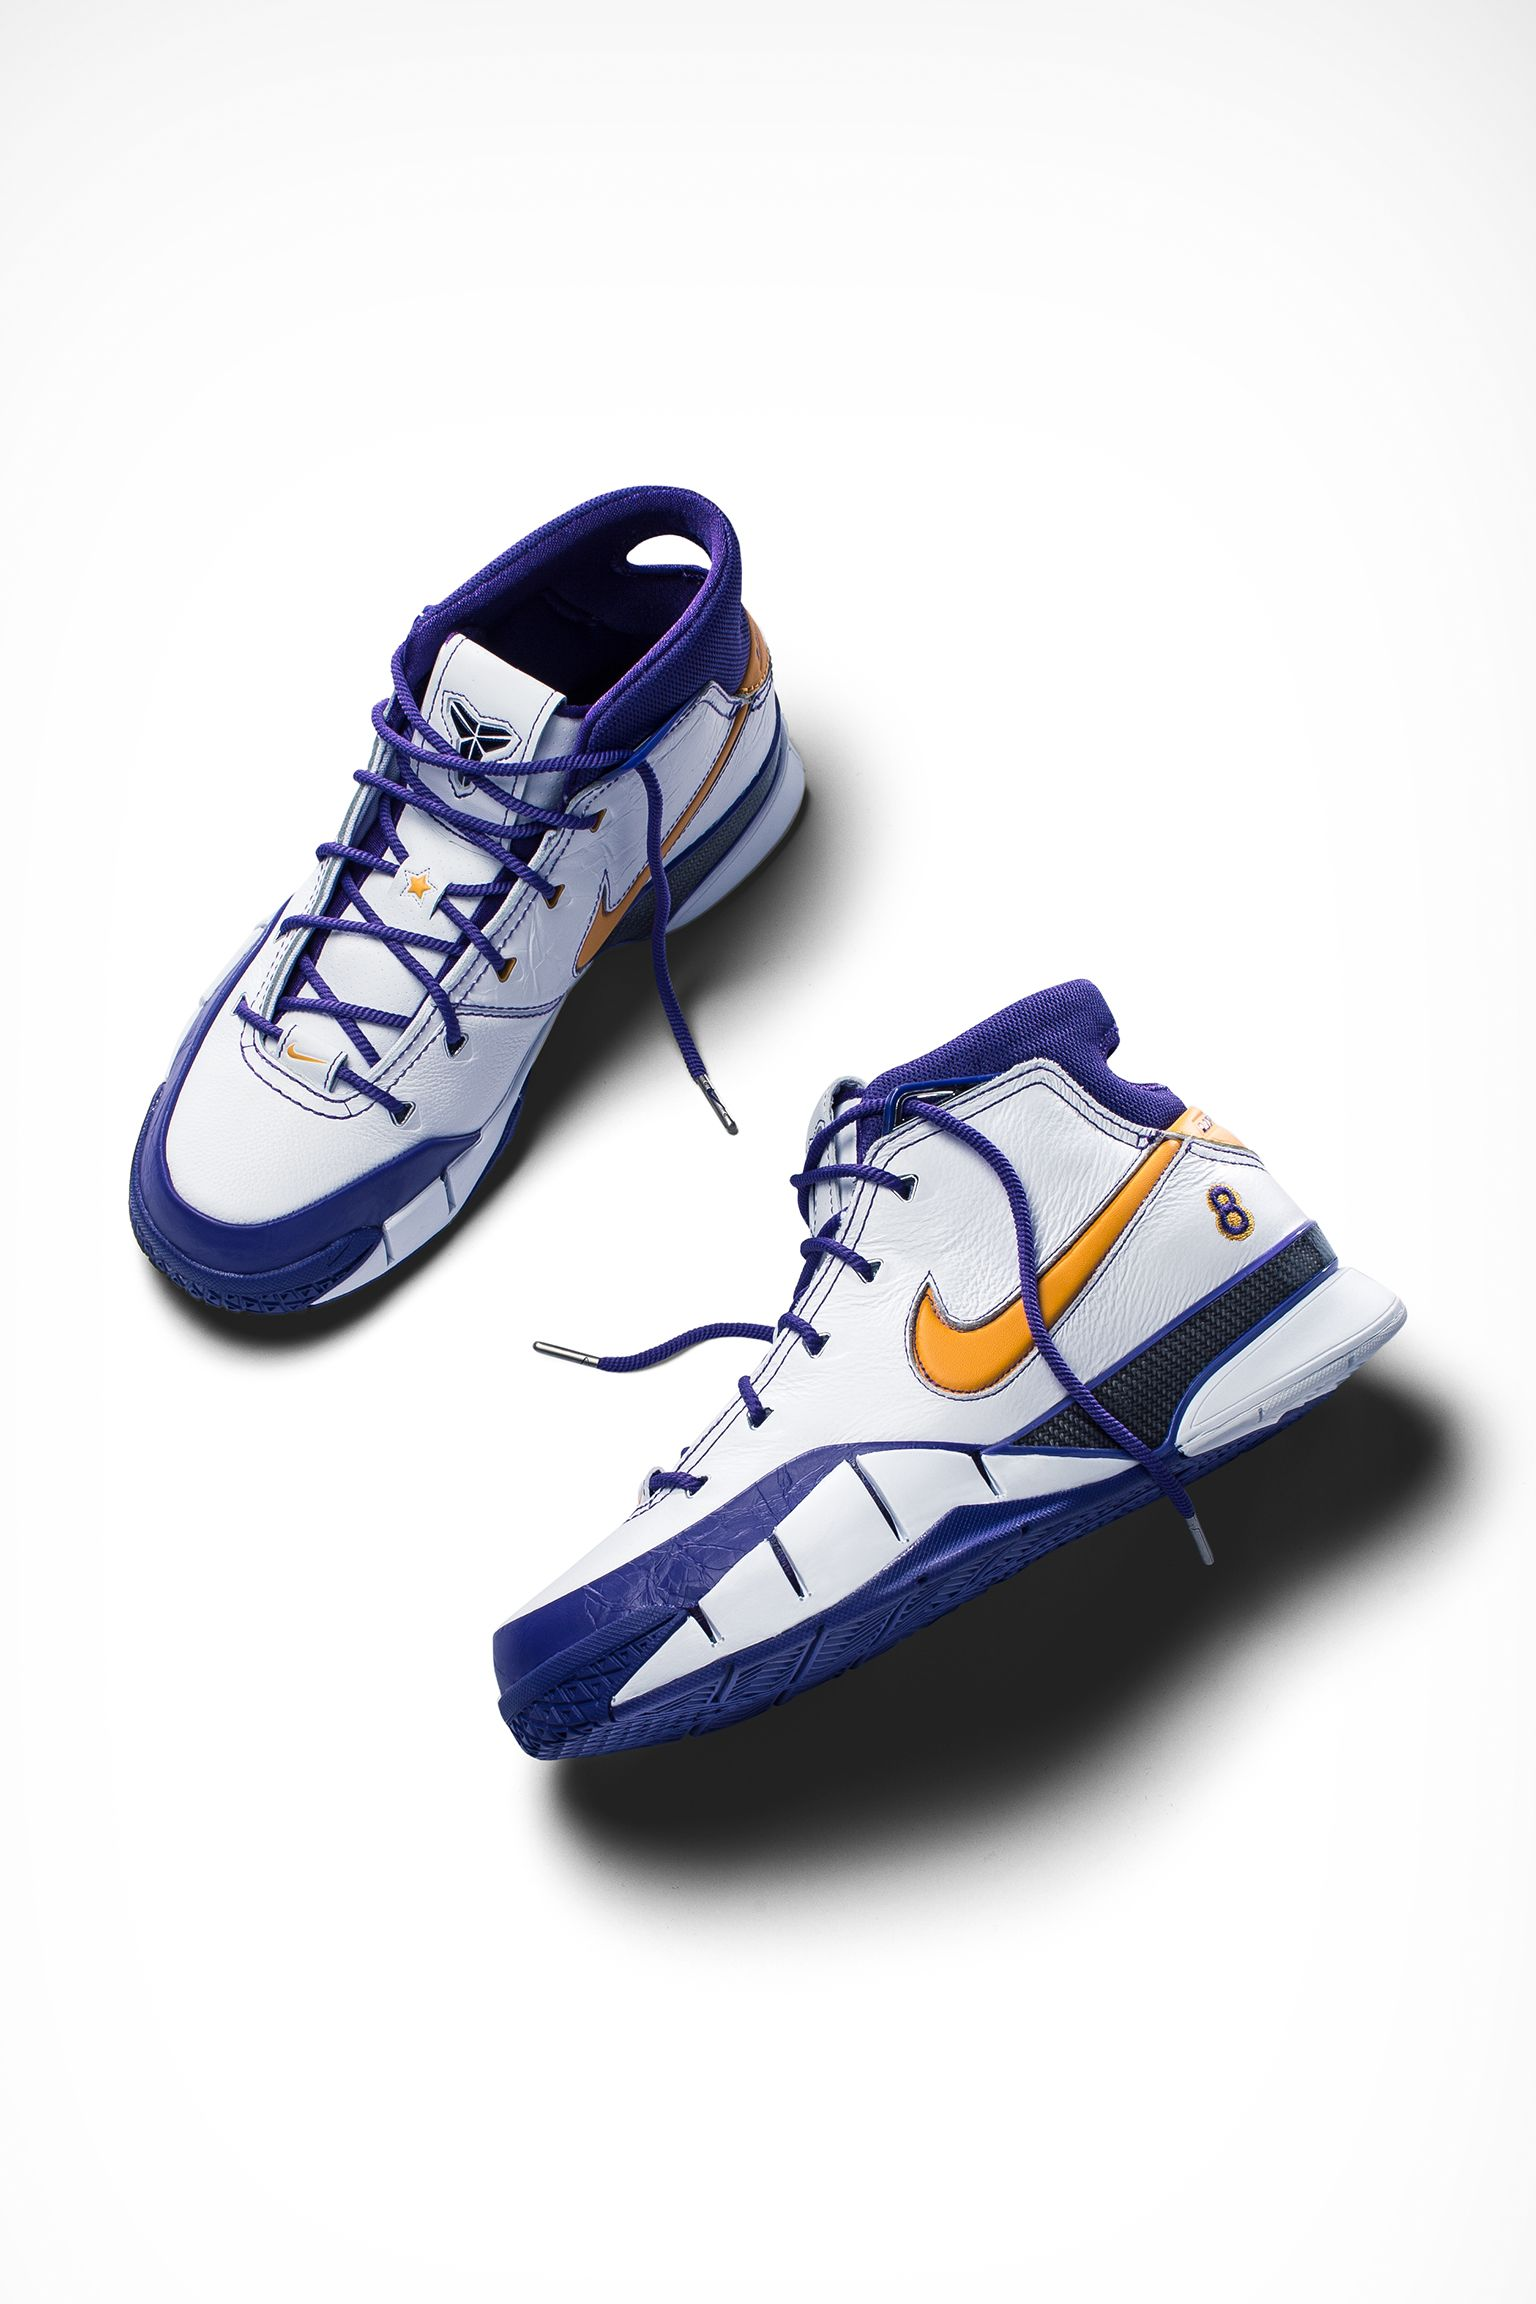 Behind The Design: Kobe 1 Protro